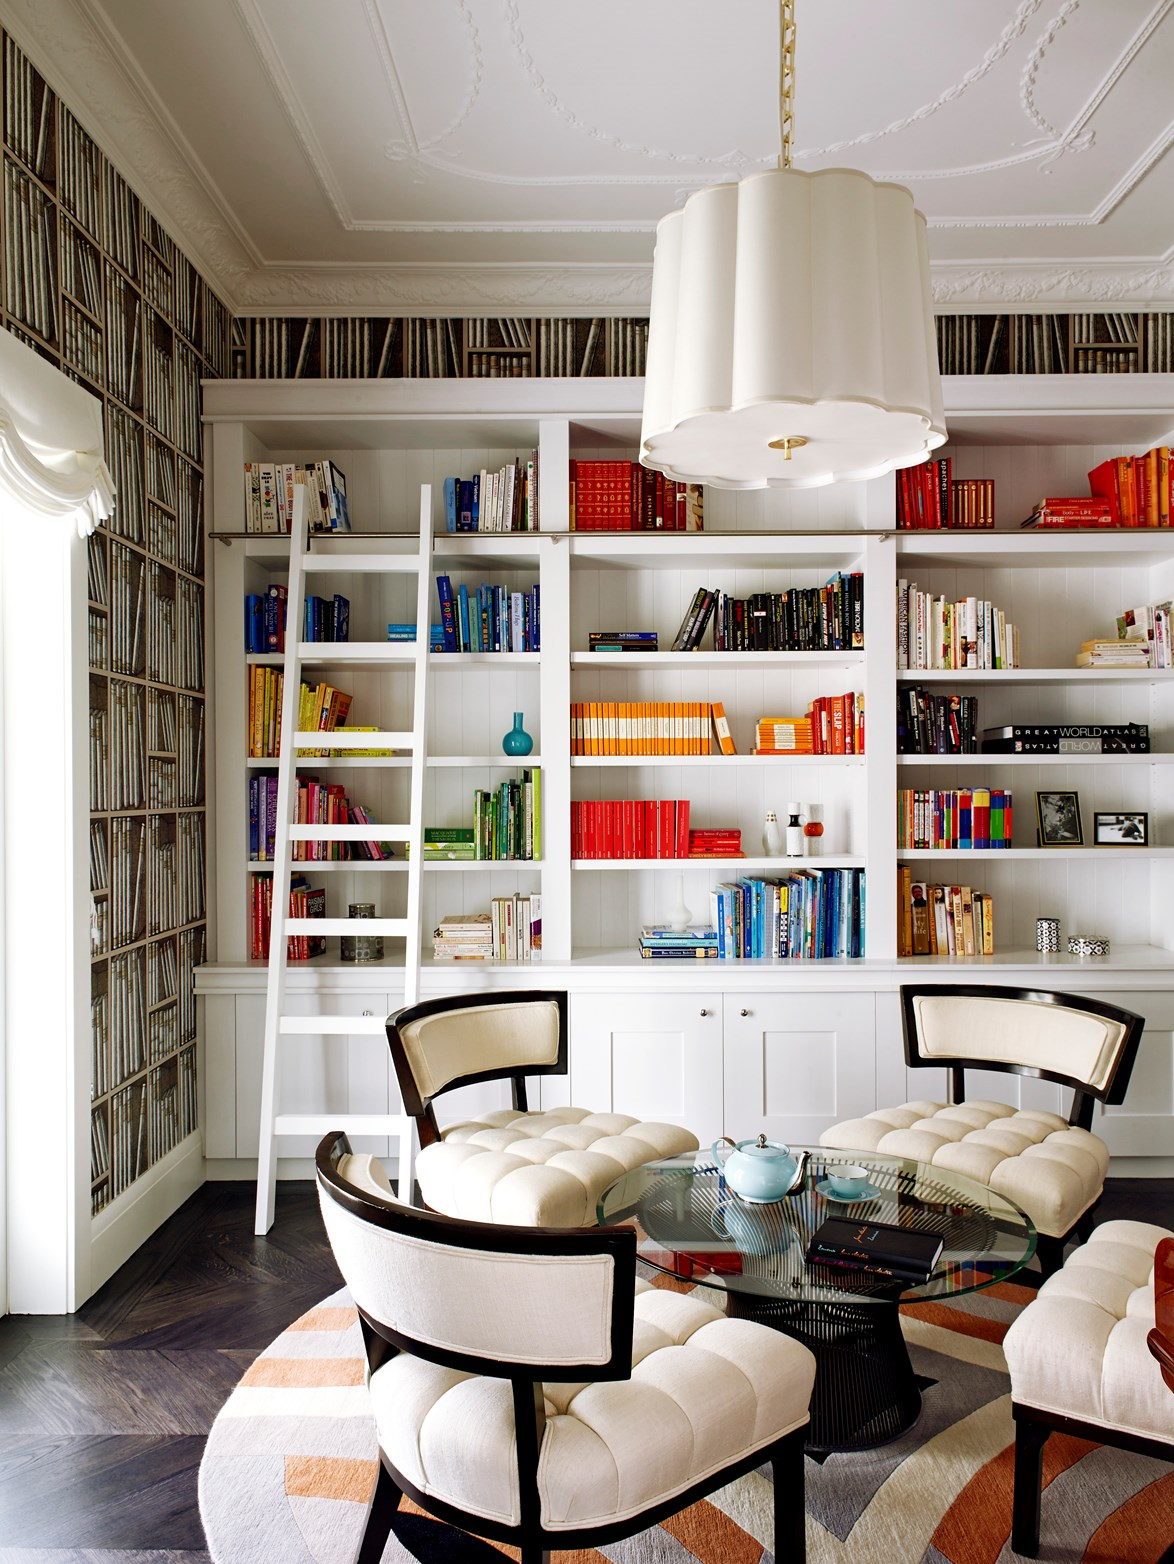 "[Bookshelves](https://www.homestolove.com.au/10-bookshelves-in-australian-homes-5497|target=""_blank"") can be a common clutter culprit but not this beauty! Try colour-coding your books to make them a design feature rather than an eyesore. *Photo:* Anson Smart / *Belle*"